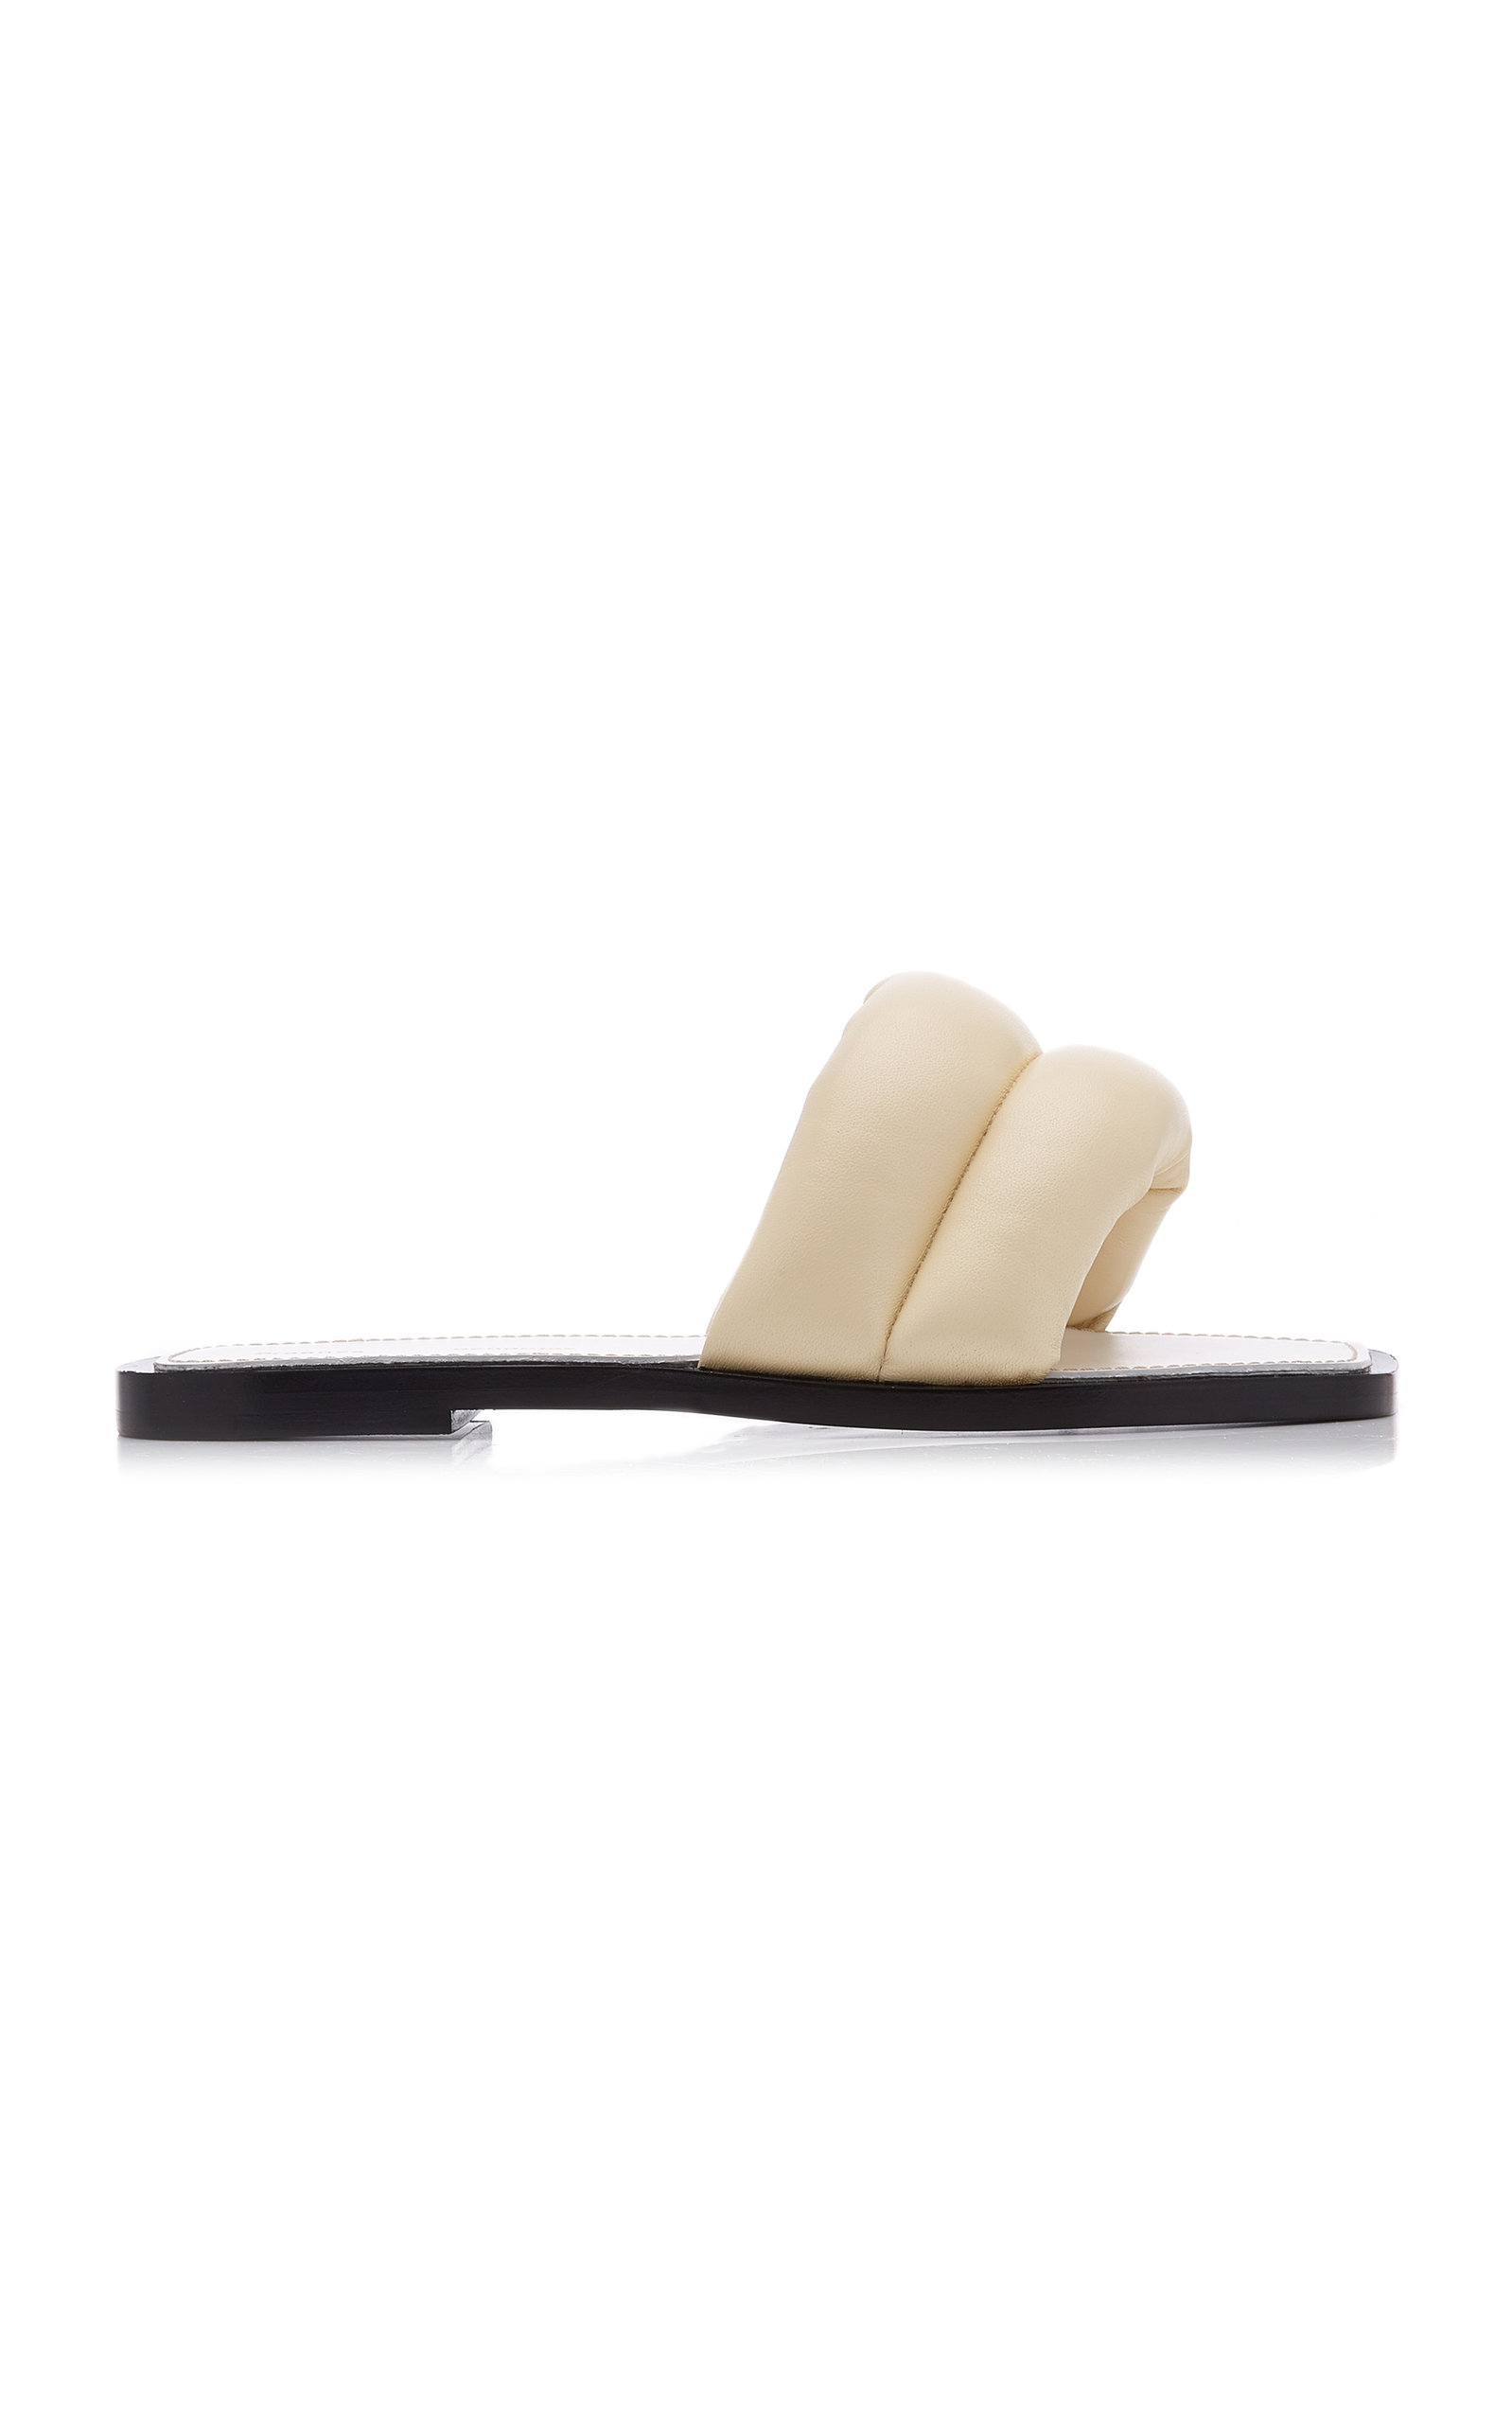 Proenza Schouler Shoes WOMEN'S PUFFY LEATHER SLIDE SANDALS